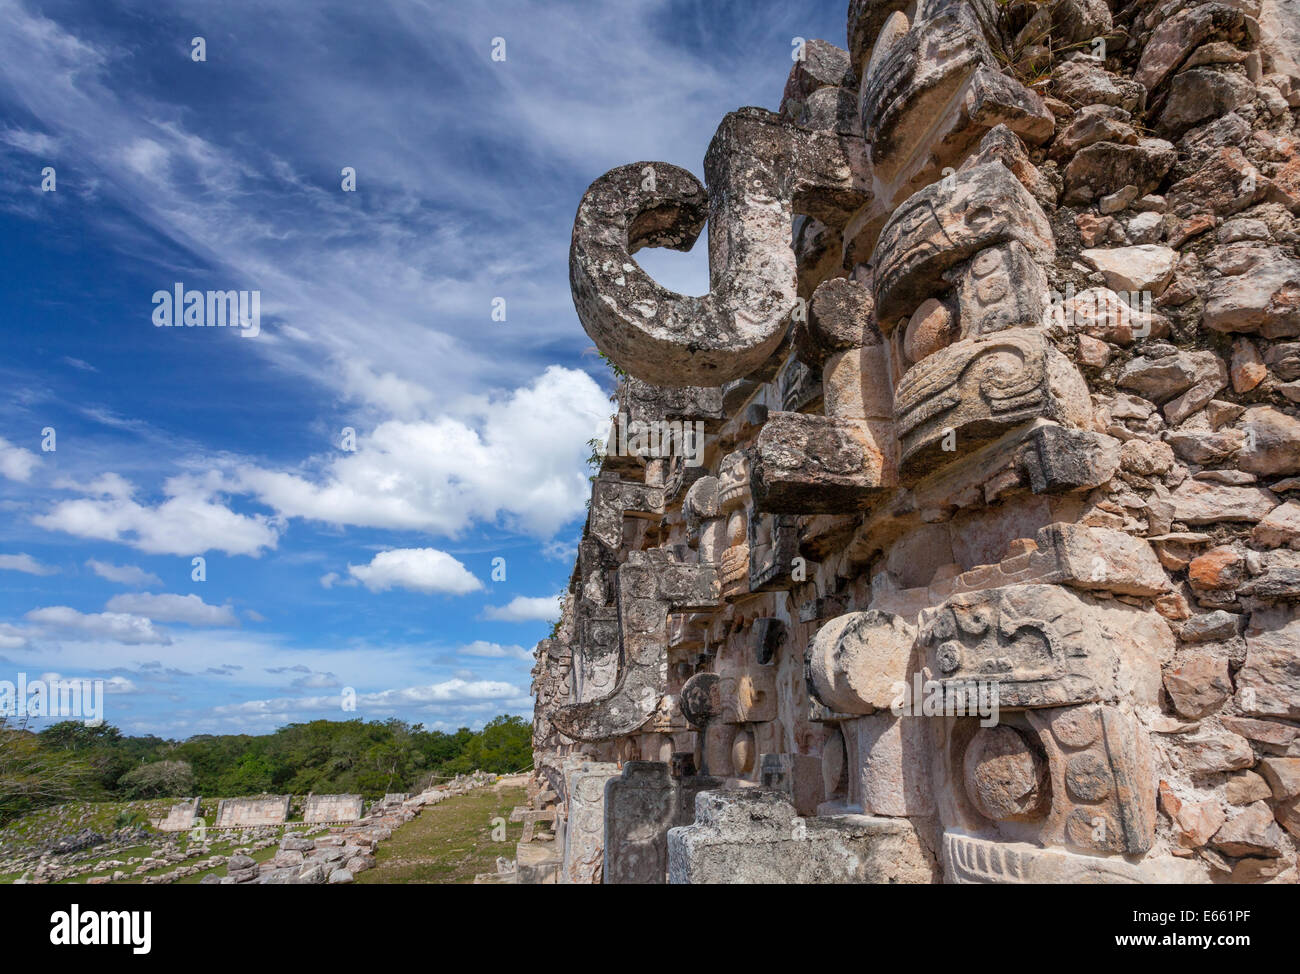 The hooked snout of Chaac, the rain god, on the Temple of Masks at Kabah, Yucatan, Mexico. Stock Photo